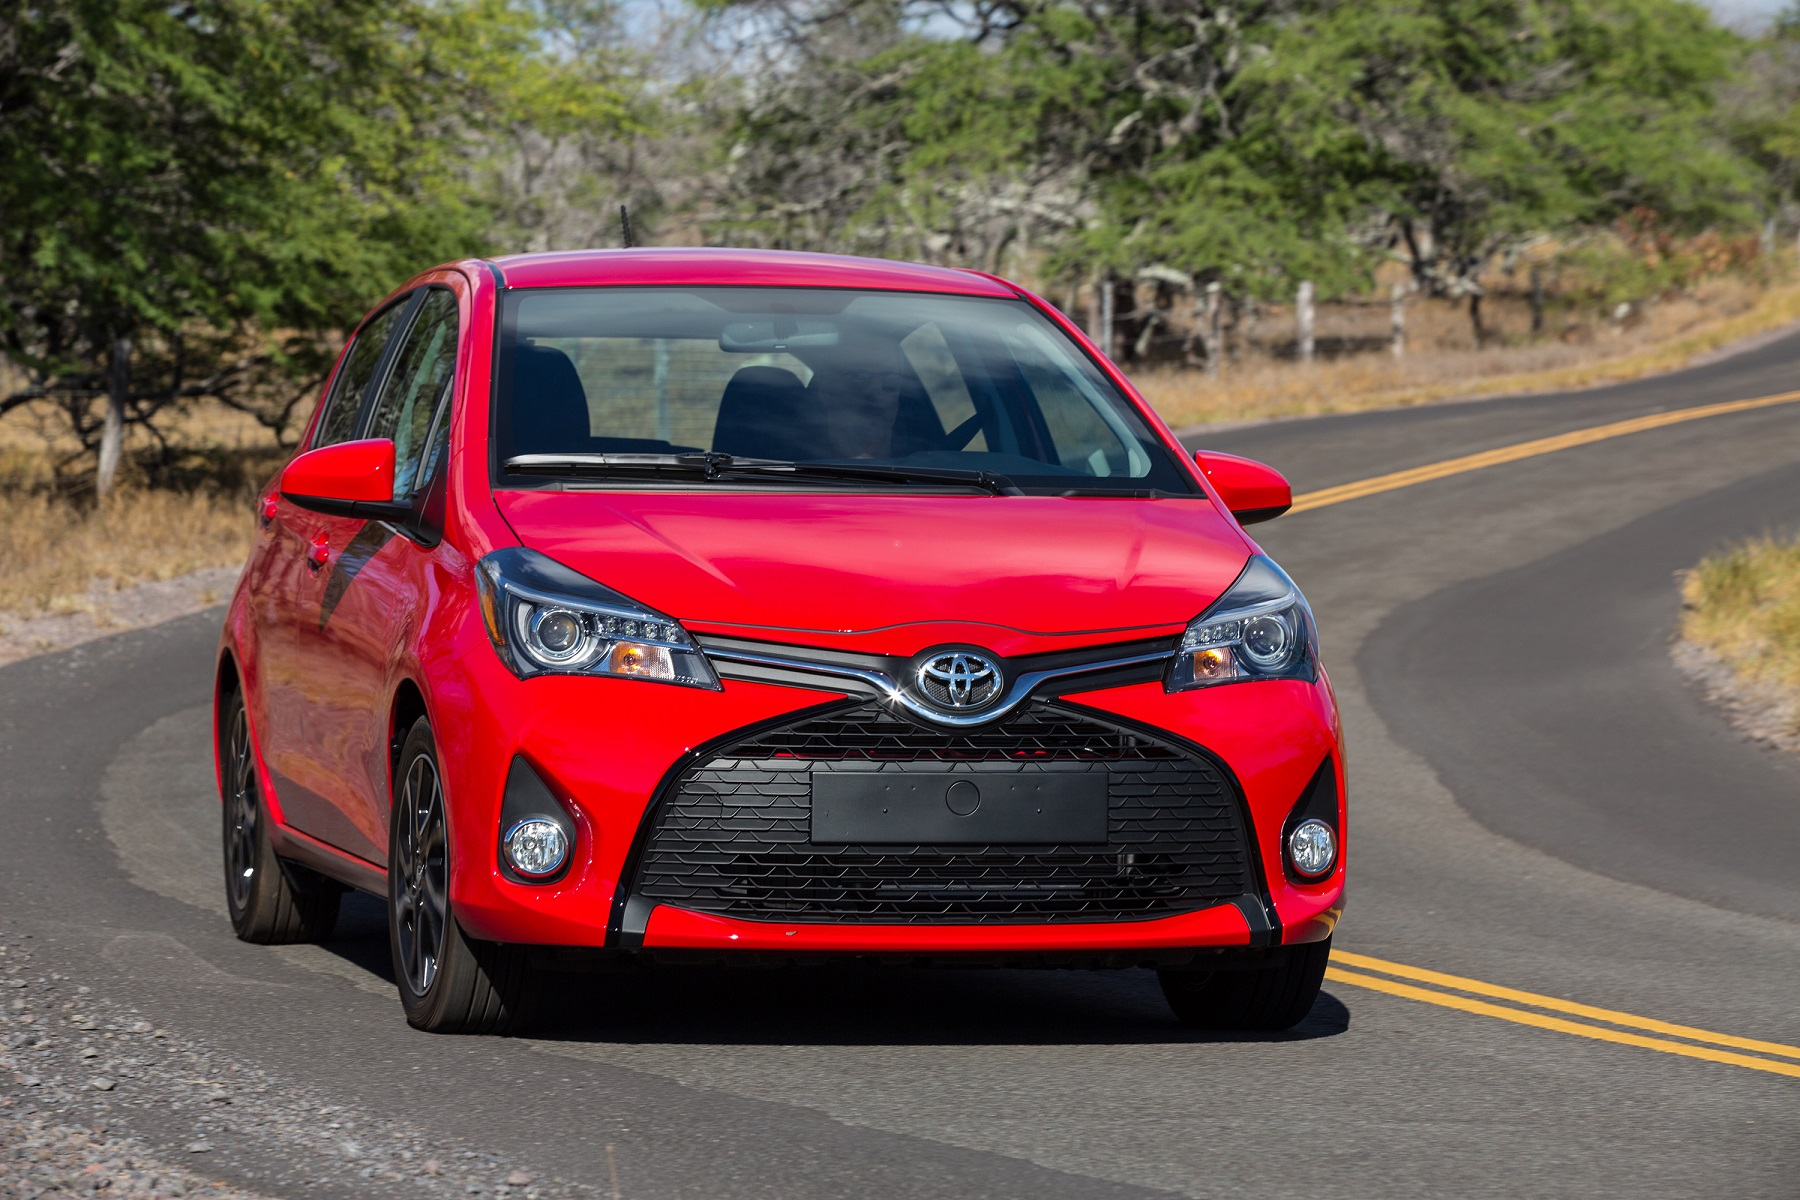 Manufacturer photo: The new Yaris combines an energetic shape with a more comfortable cabin